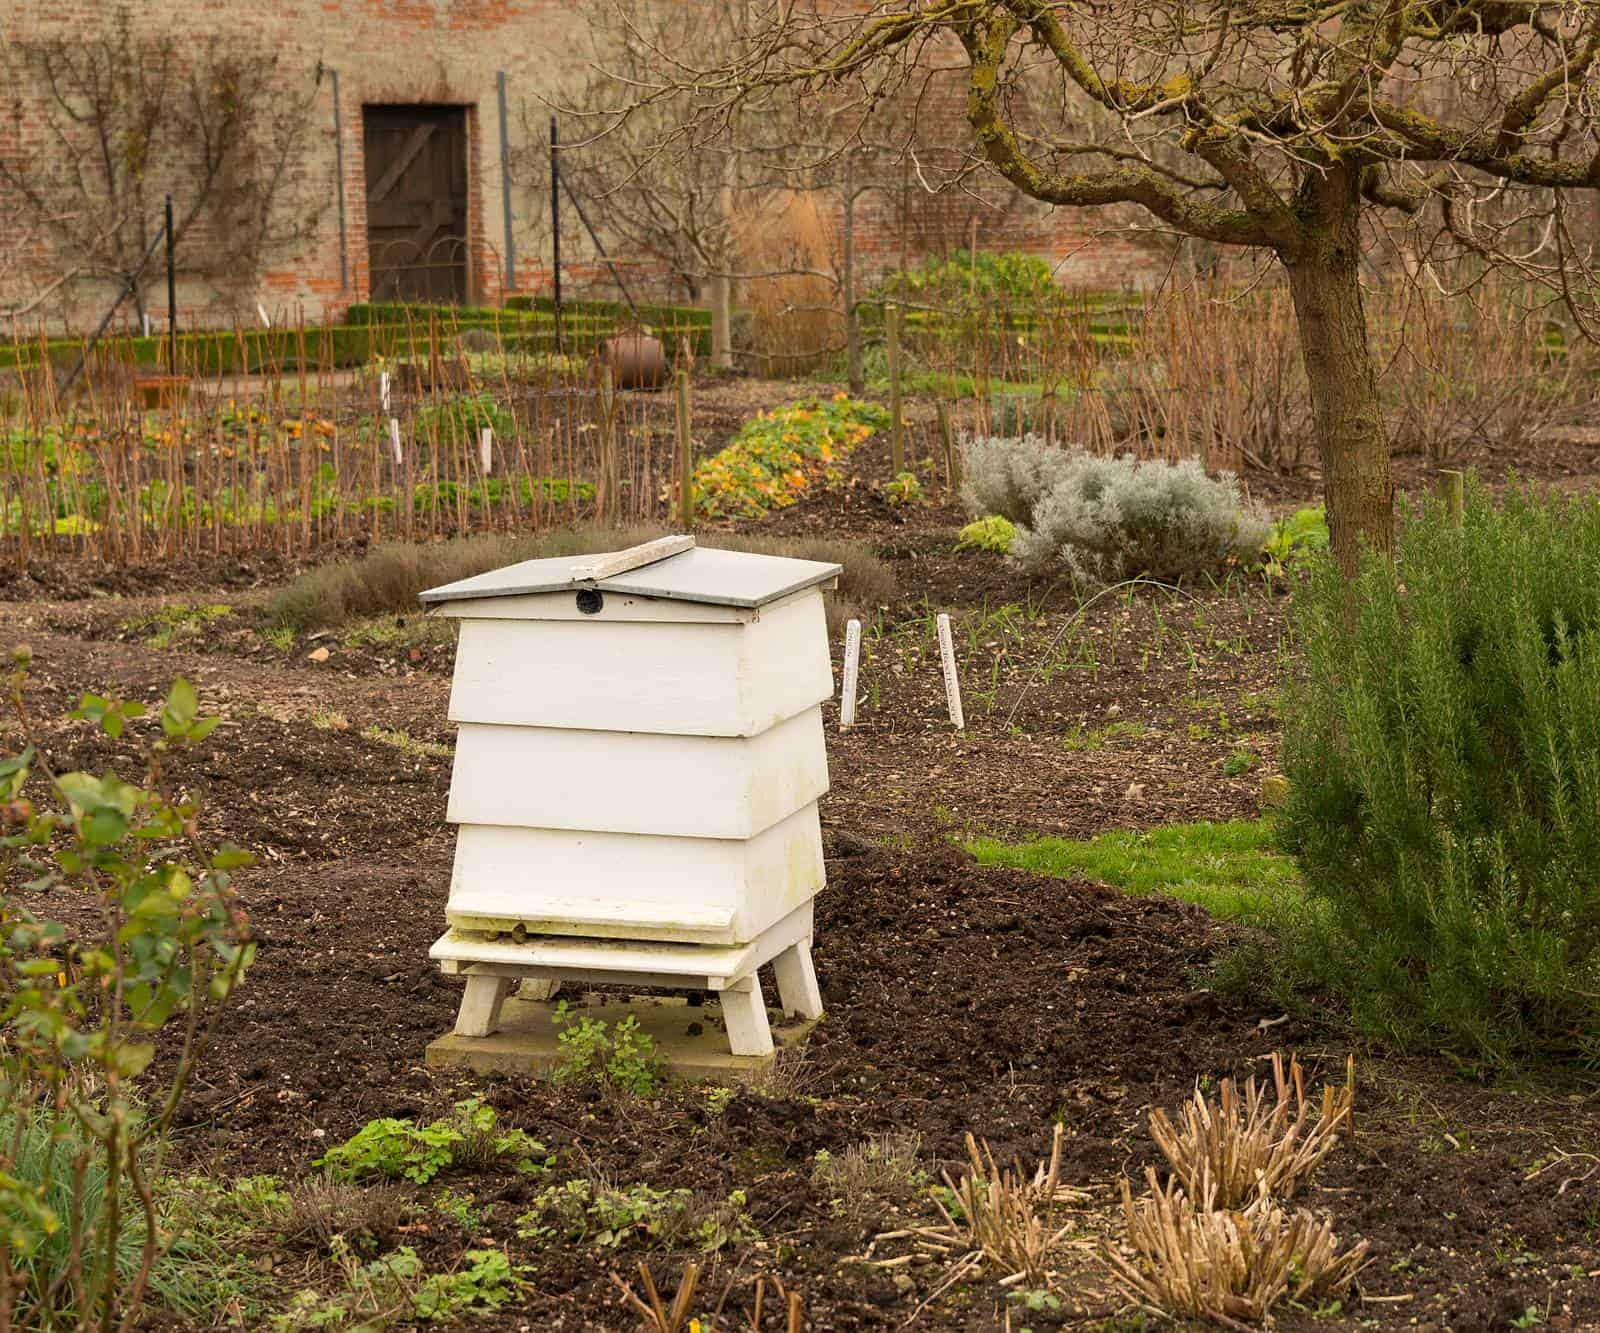 How far should I keep beehives from my house?